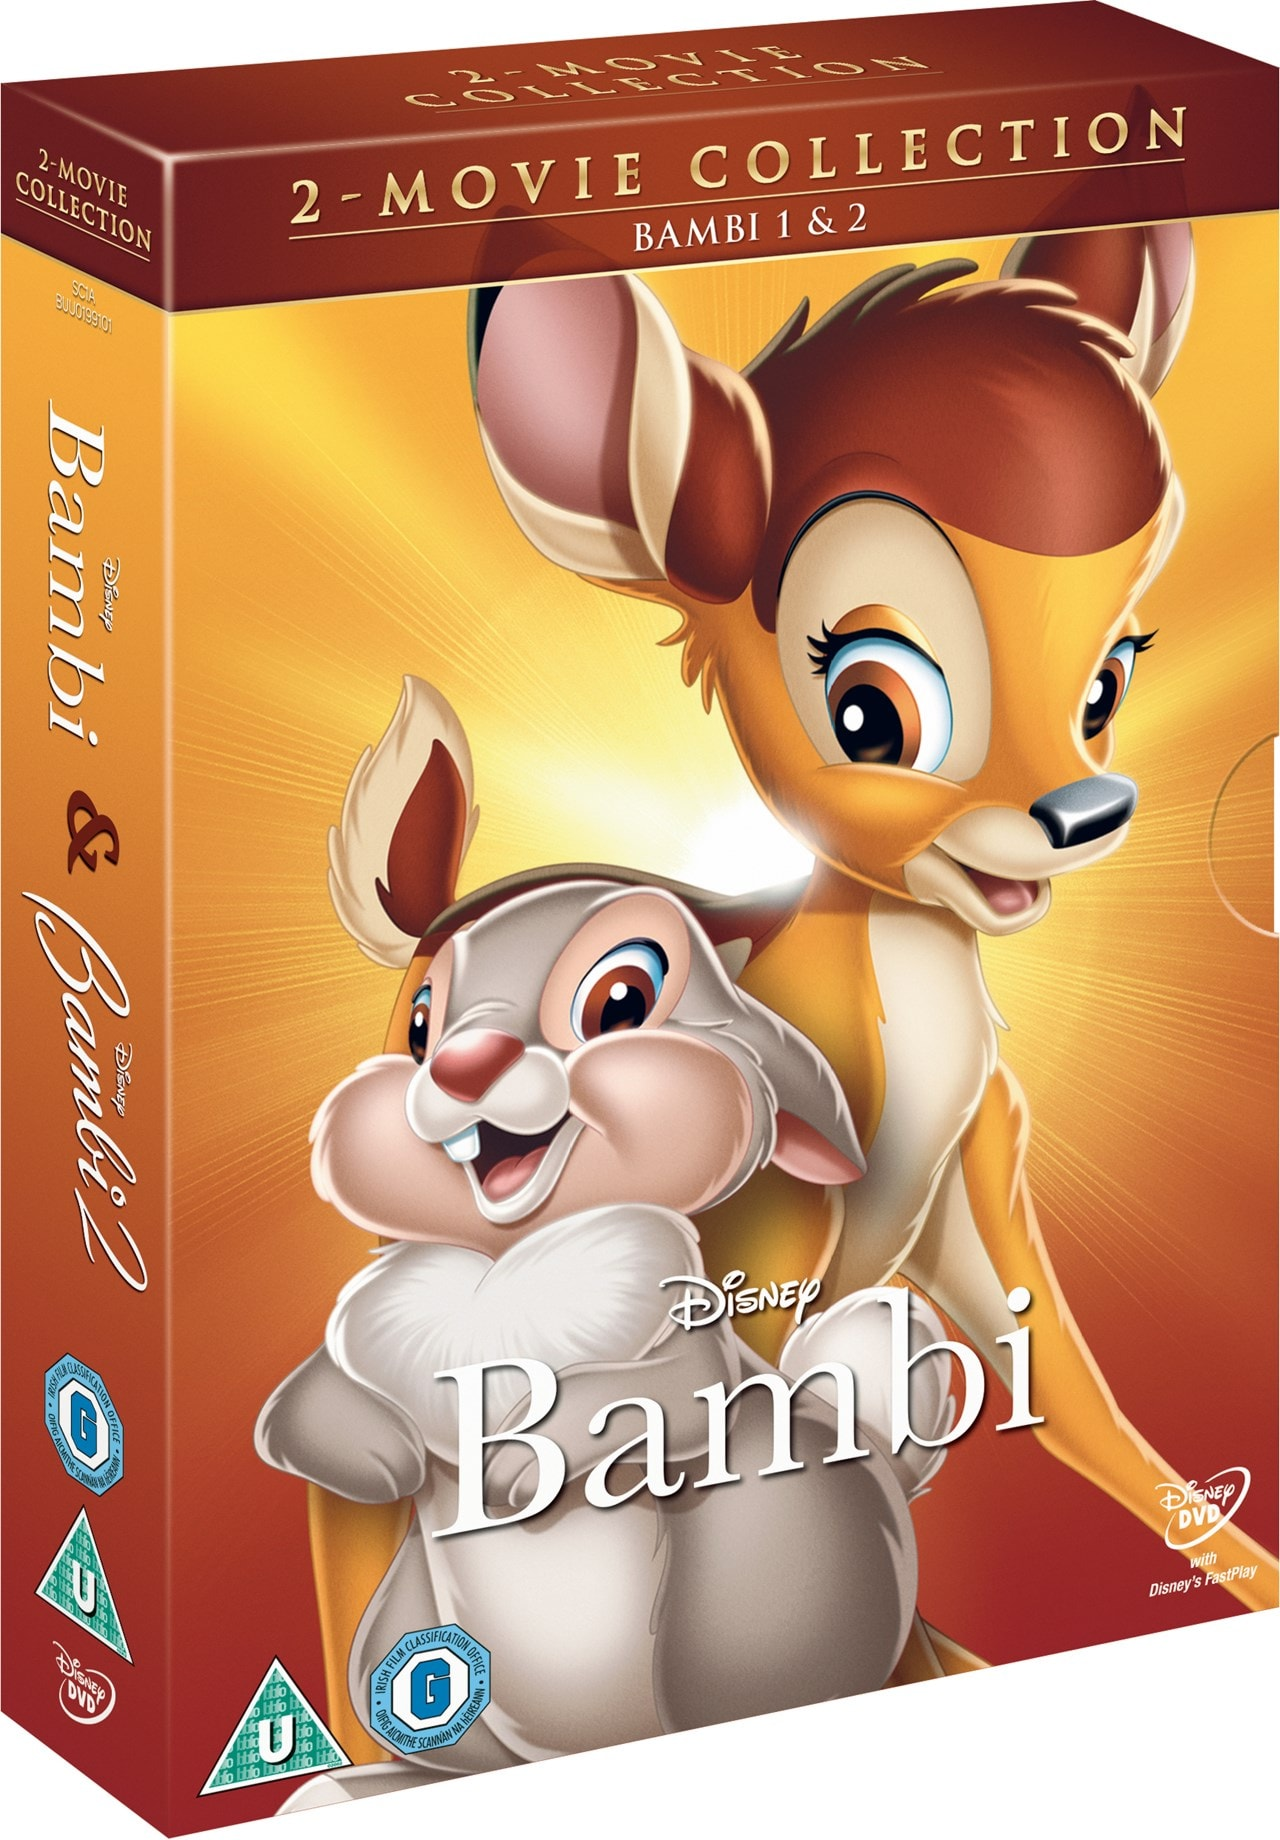 Bambi/Bambi 2 - The Great Prince of the Forest - 4